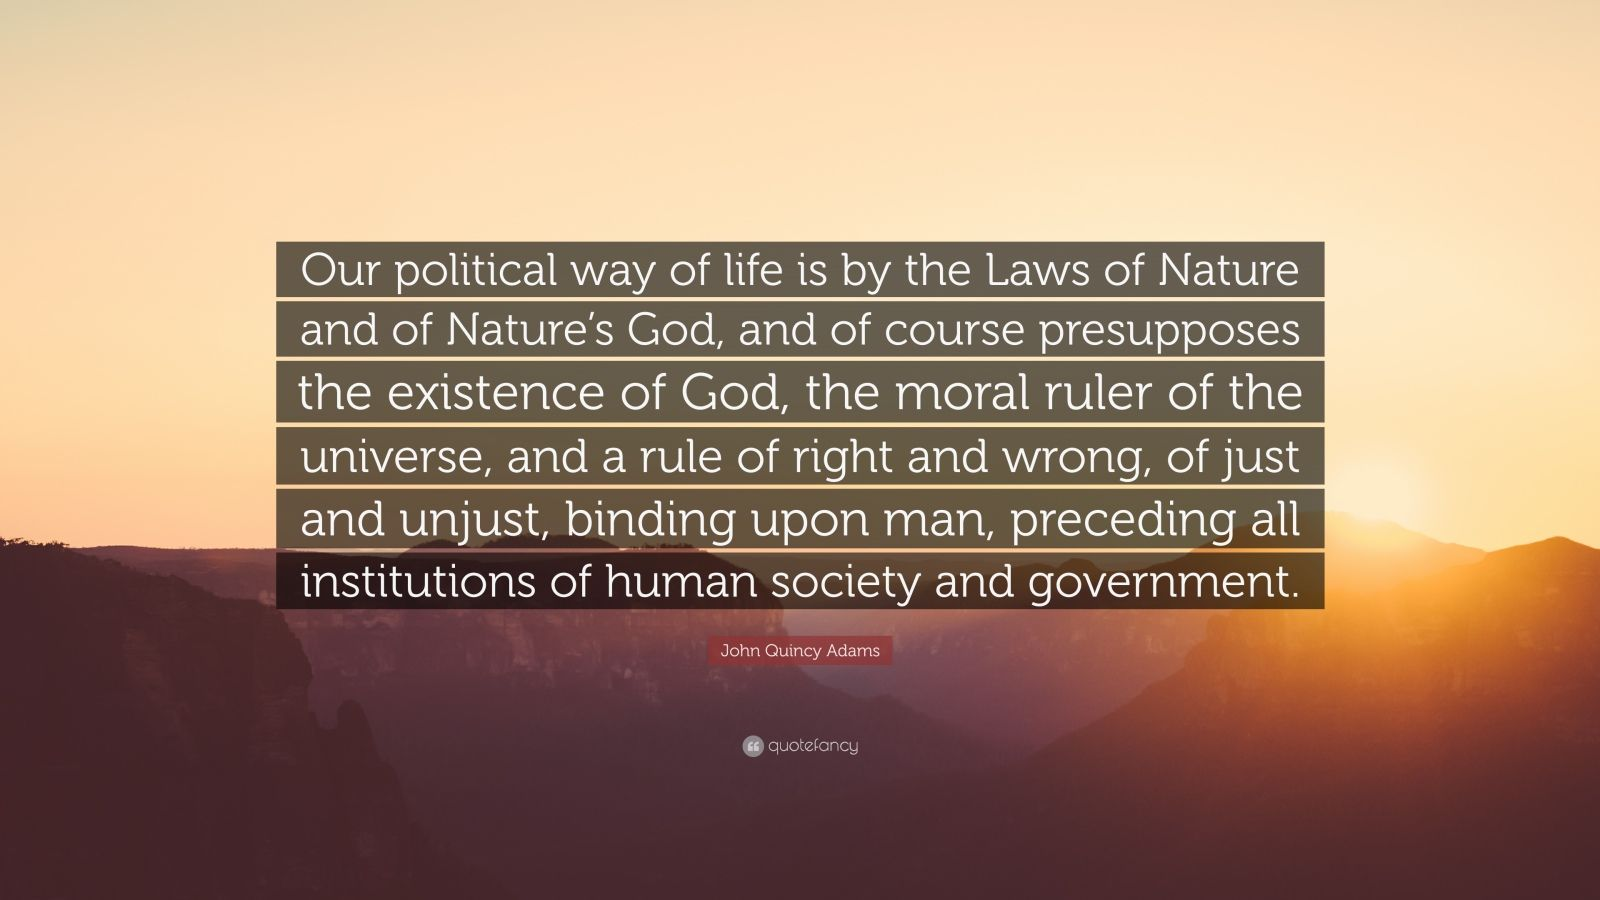 """John Quincy Adams Quote: """"Our political way of life is by the Laws of Nature and of Nature's God, and of course presupposes the existence of God, the moral ruler of the universe, and a rule of right and wrong, of just and unjust, binding upon man, preceding all institutions of human society and government."""""""